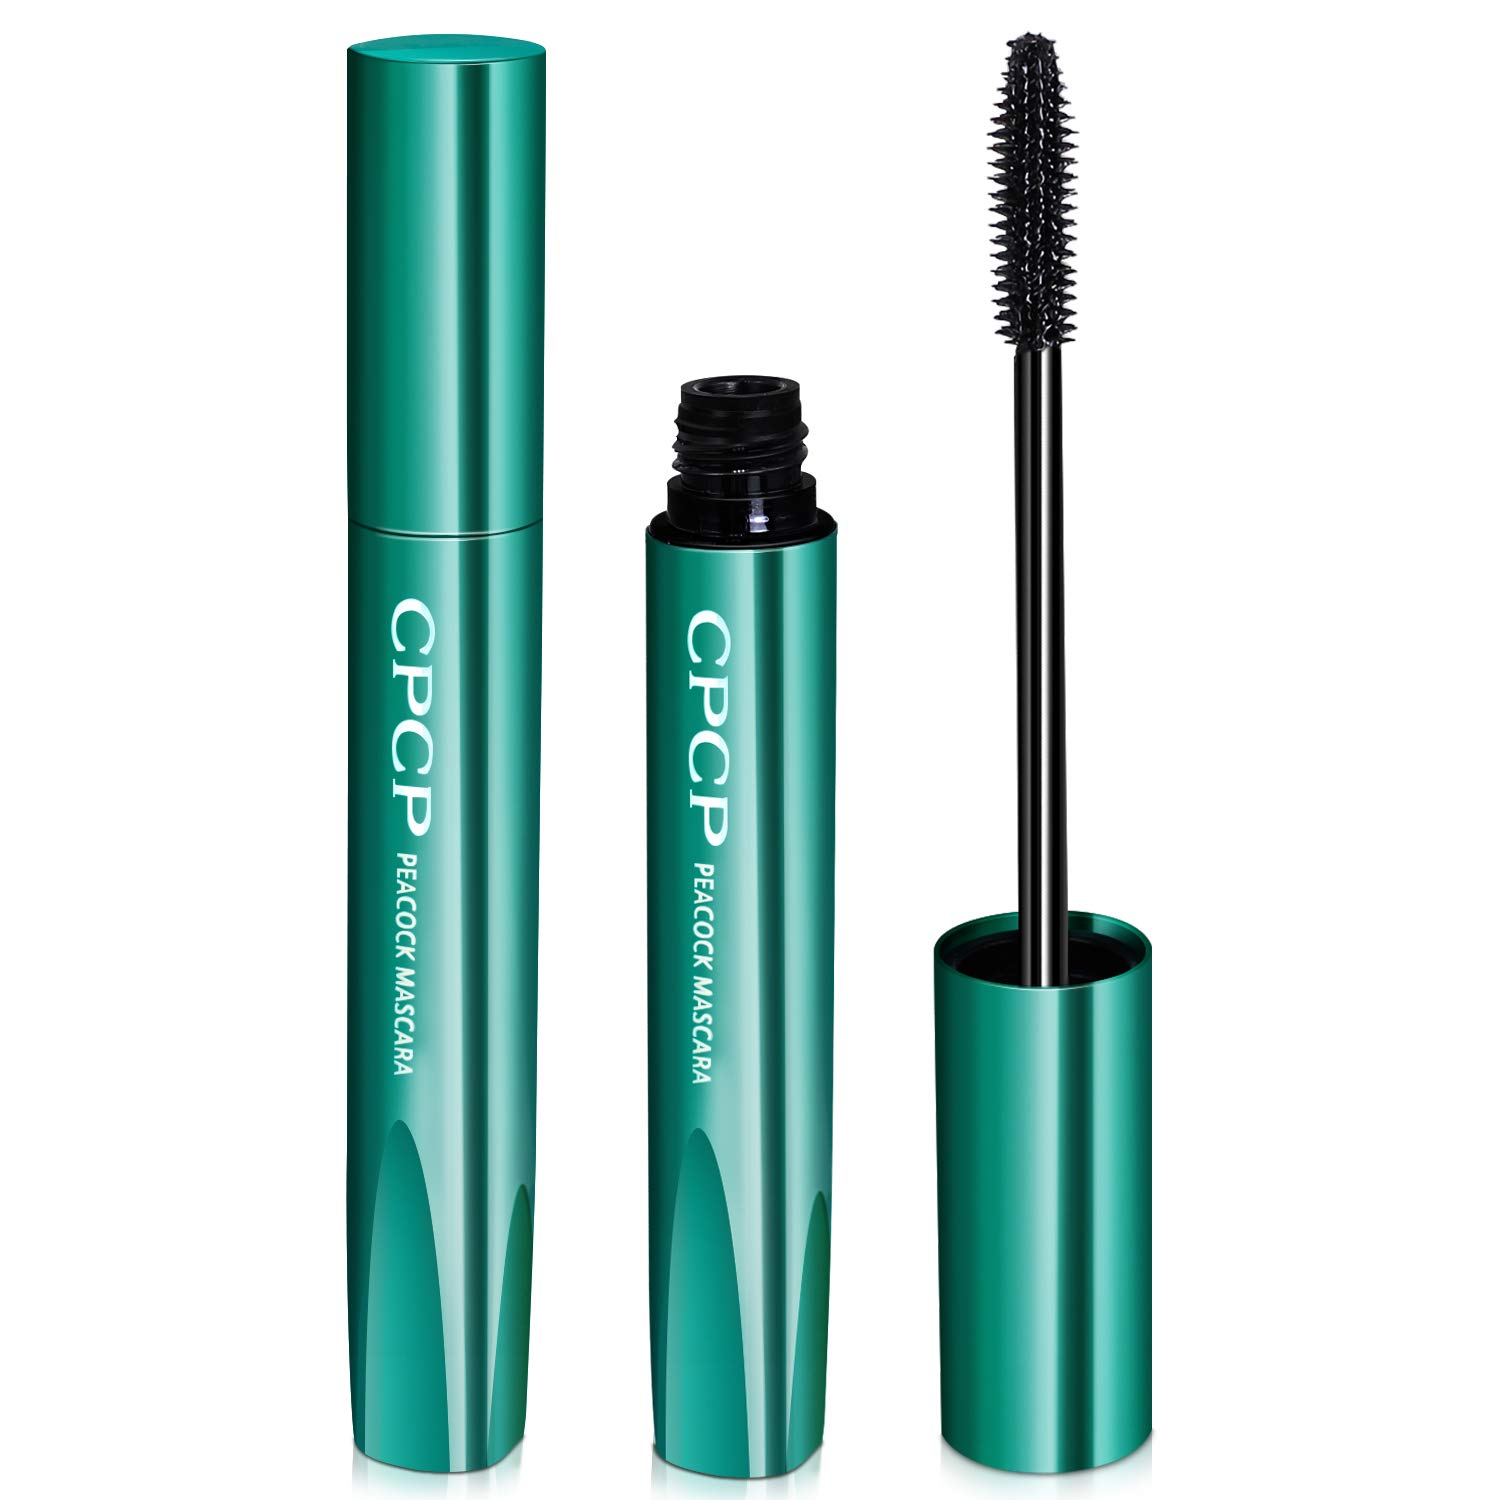 SIKEMAY 2 Pcs 4D Silk Fiber Lash Black Mascara, Longer & Thicker Lashes, Waterproof, Clump-Free, Long-Lasting, Smudge-proof, Hypoallergenic, All Day Luxurious Looking Lashes